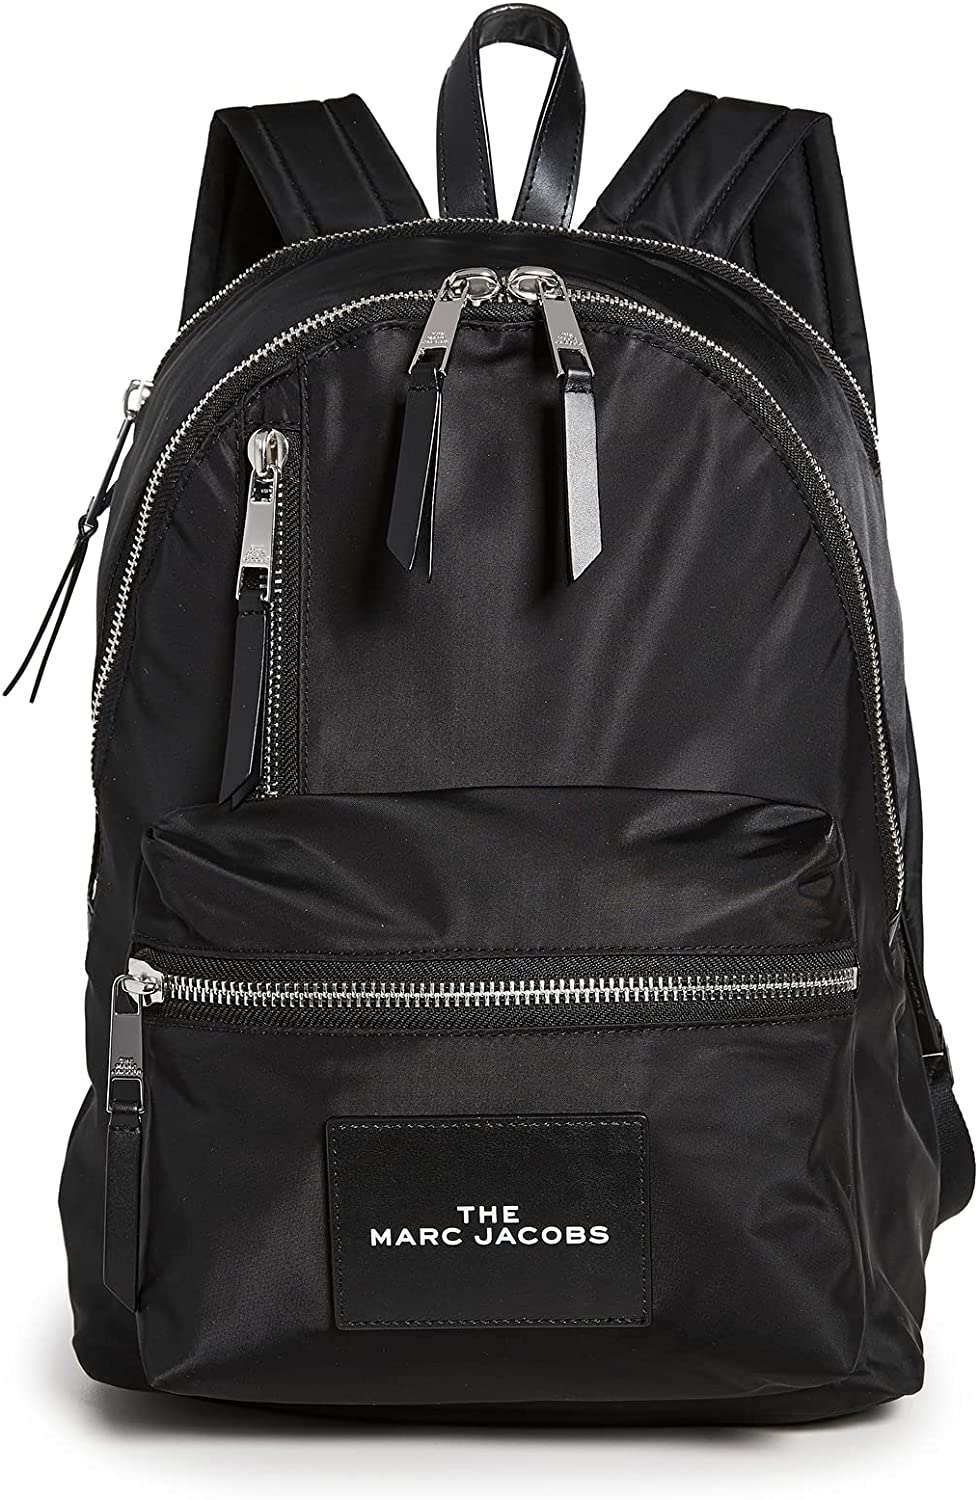 The Marc Jacobs Womens The Pouch Nylon Backpack, Black, One Size